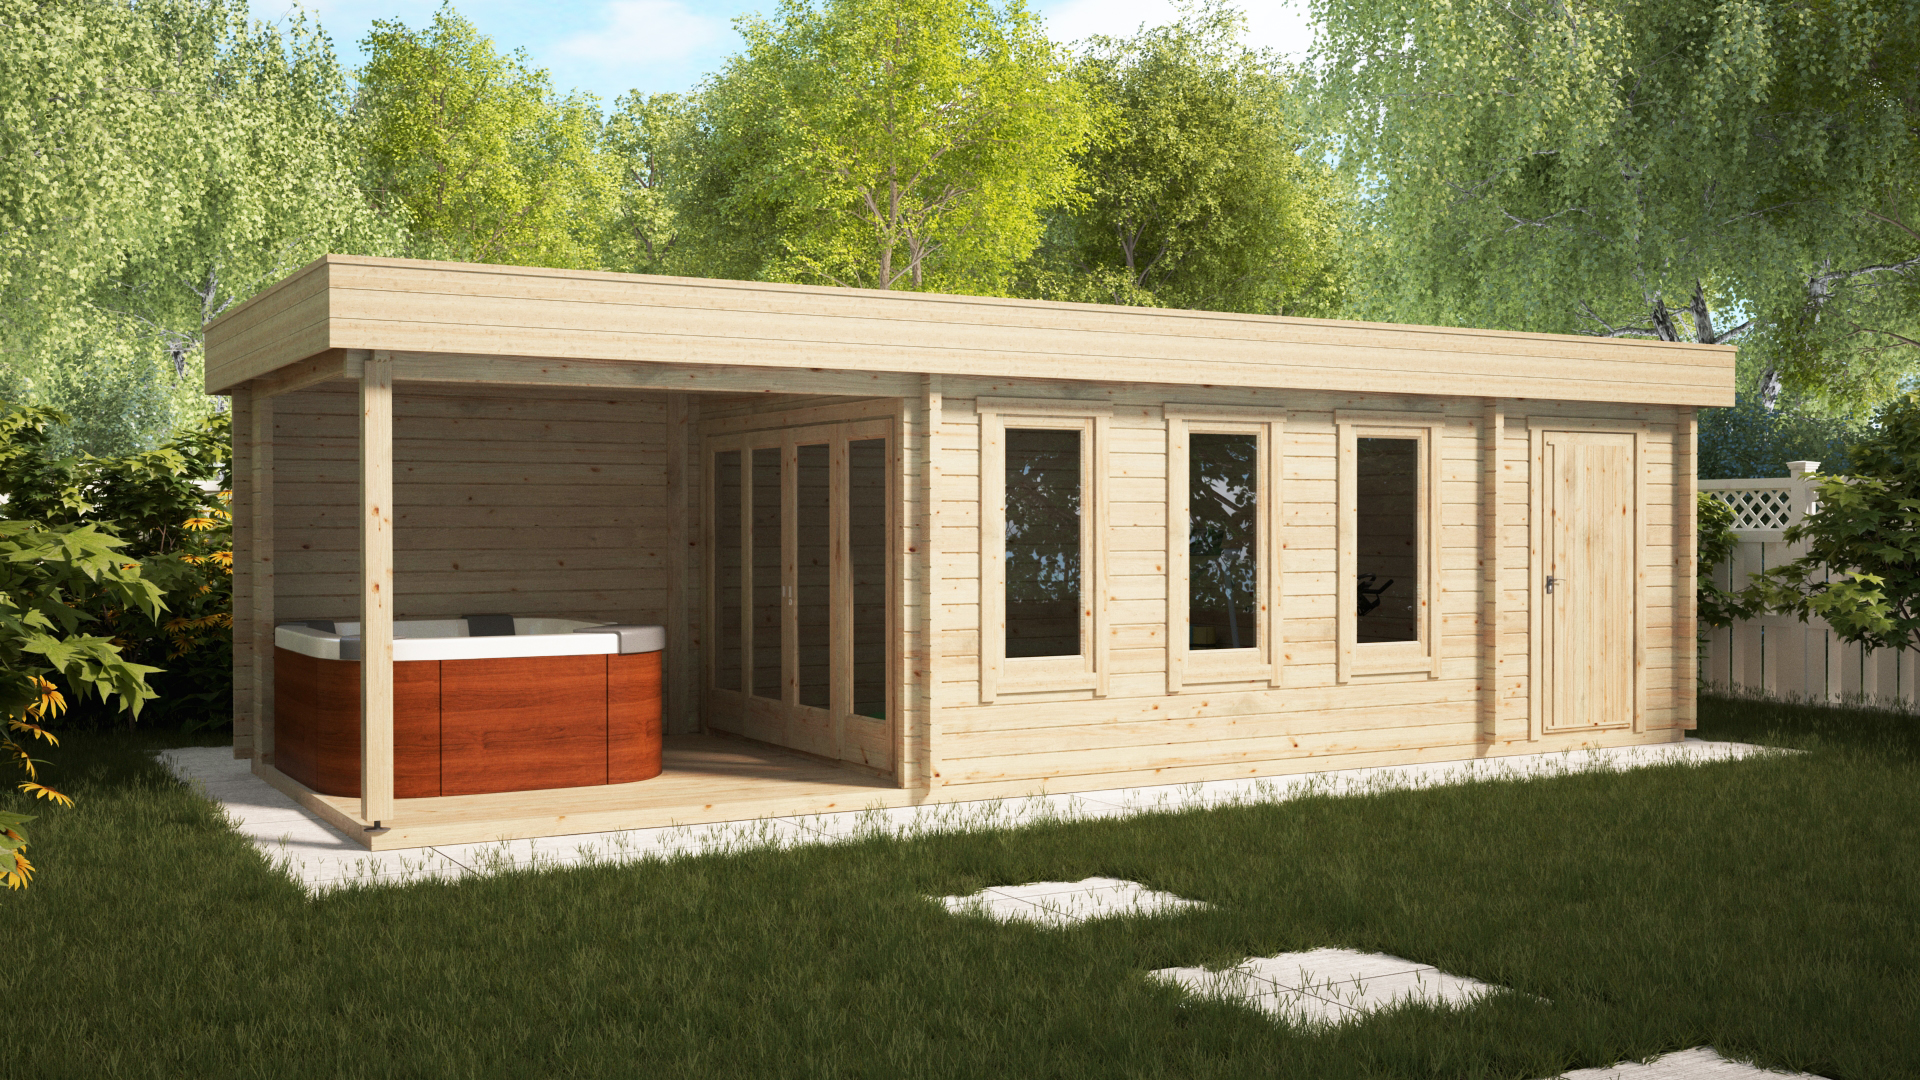 Garden log cabin with shed and veranda super jacob e 18m for Garden shed 2 rooms